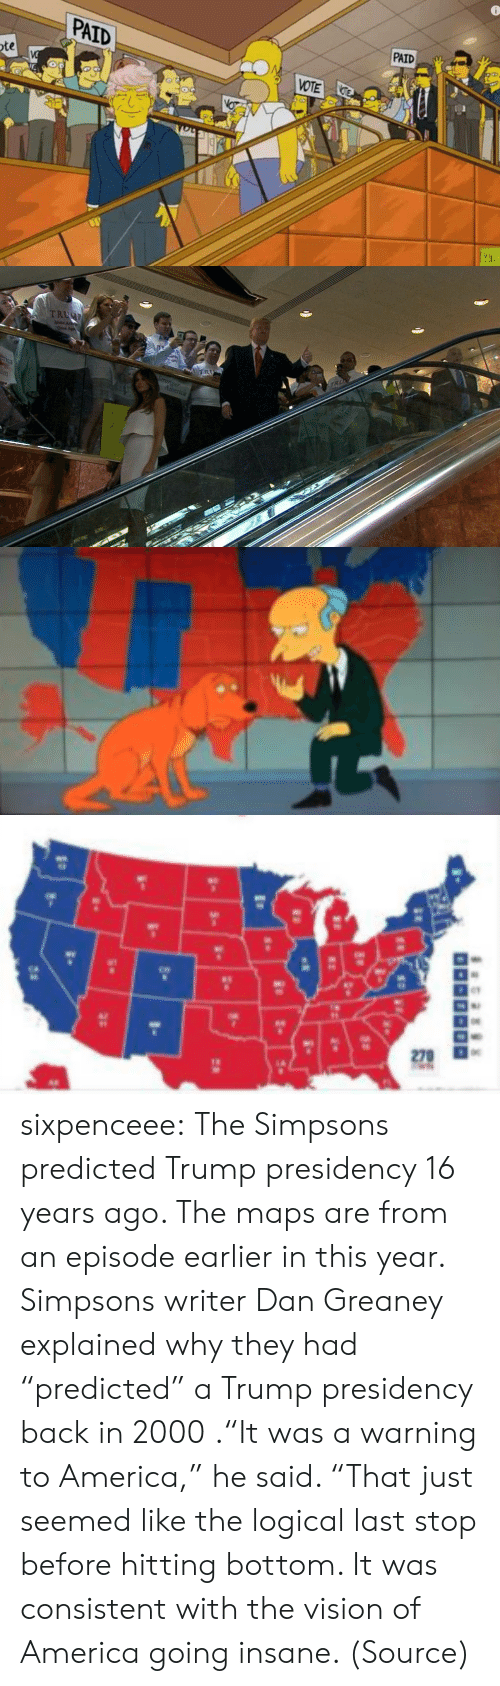 """Sixpenceee: PAID  PAID  VOTE  te   TRUC  TR  Strorger  America   270  1-  25 sixpenceee:  The Simpsons predicted Trump presidency 16 years ago. The maps are from an episode earlier in this year. Simpsons writer Dan Greaney explained why they had """"predicted"""" a Trump presidency back in 2000 .""""It was a warning to America,"""" he said. """"That just seemed like the logical last stop before hitting bottom. It was consistent with the vision of America going insane. (Source)"""